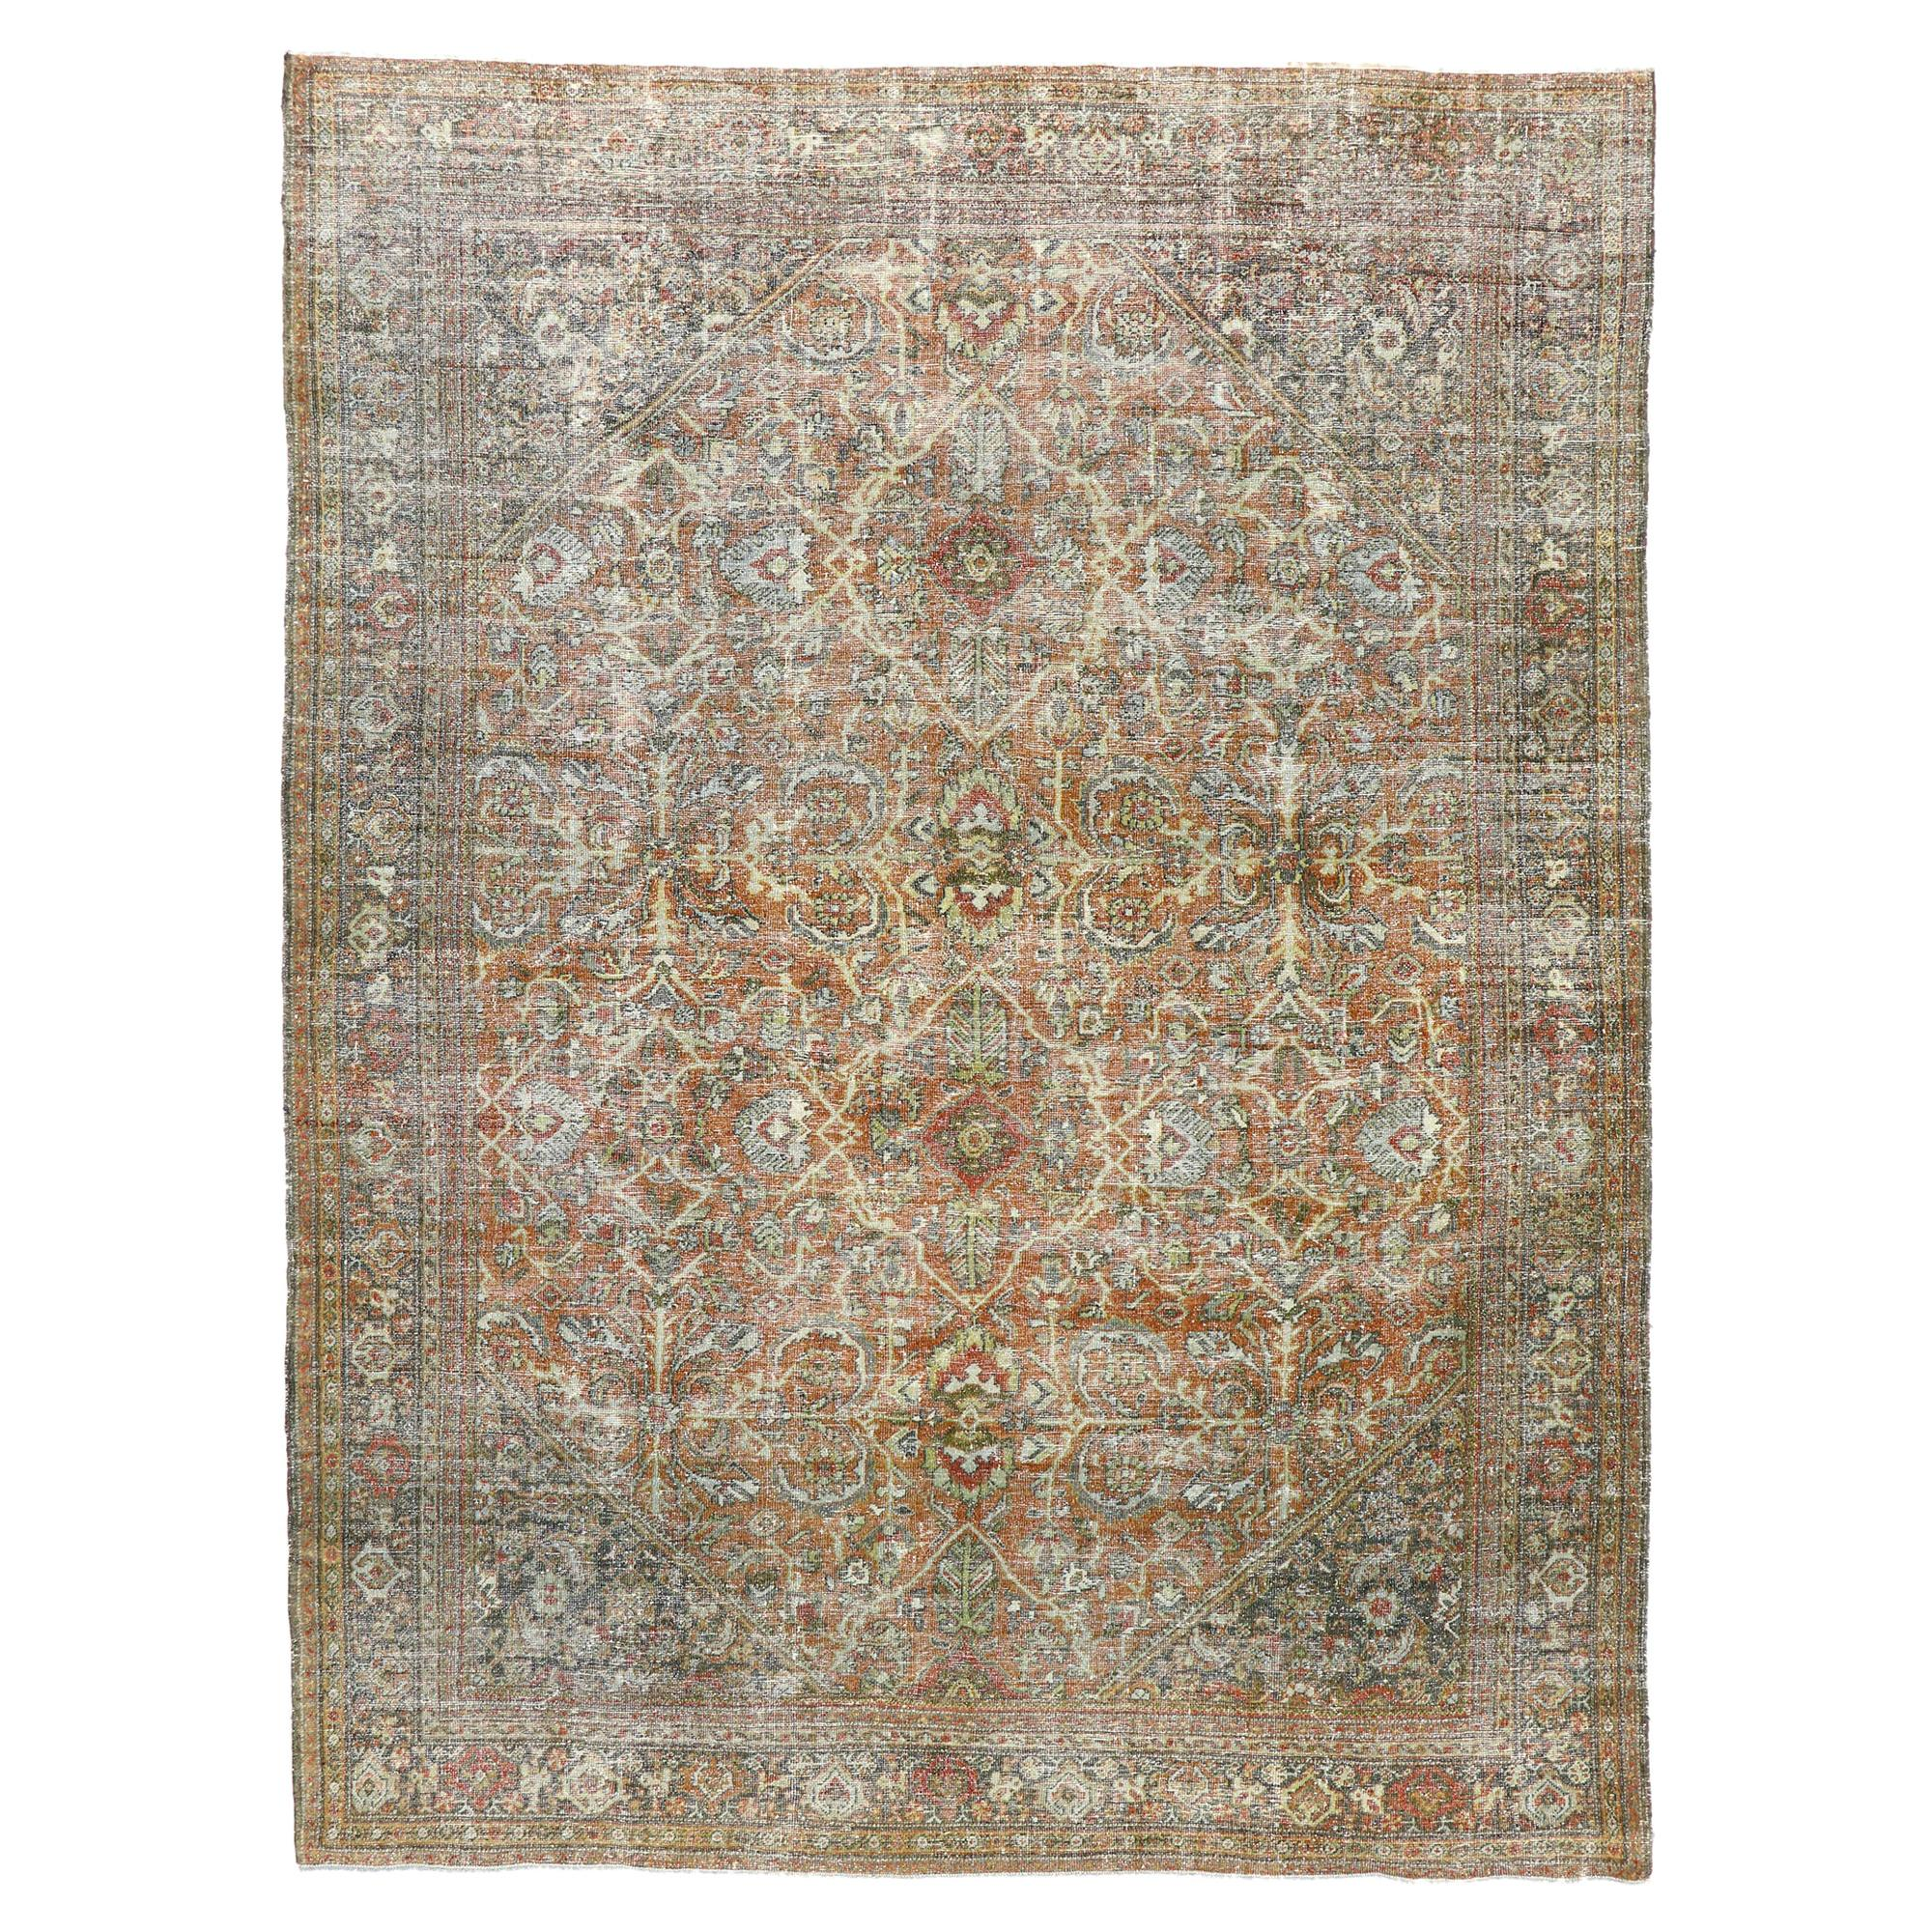 Distressed Antique Persian Mahal Area Rug with Rustic English Traditional Style